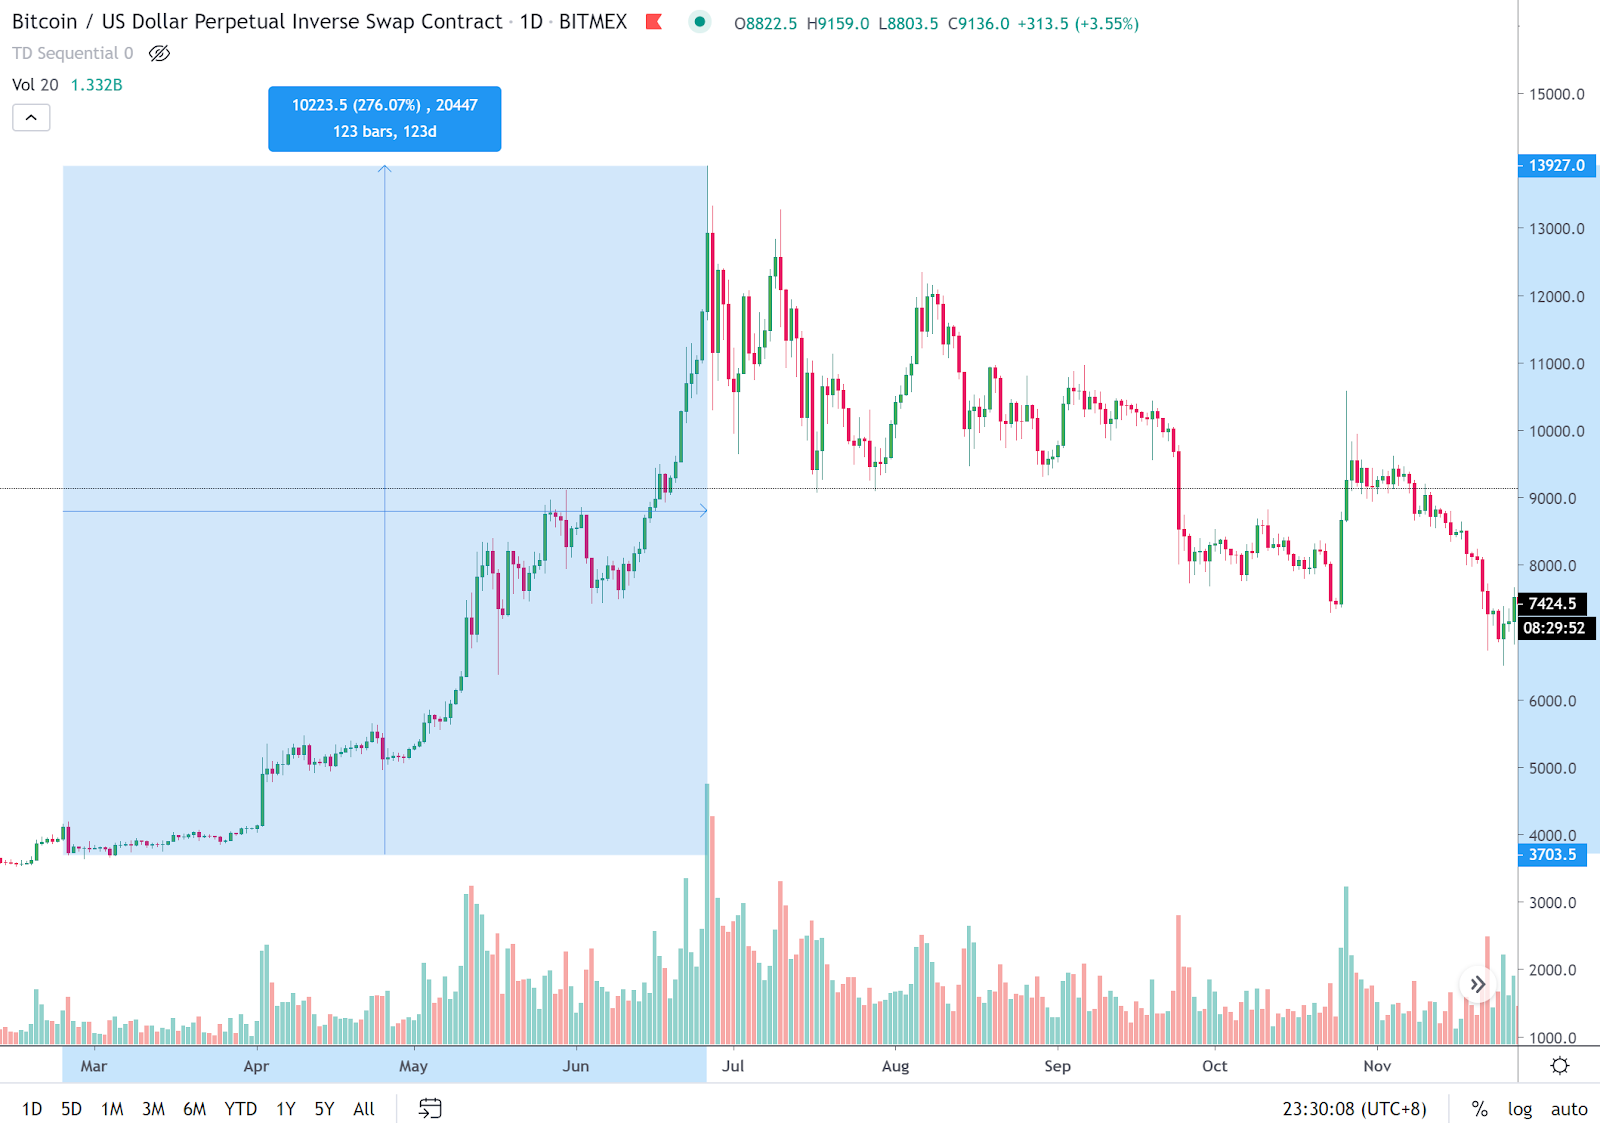 The price trend of Bitcoin in mid-2019. Source: Tradingview